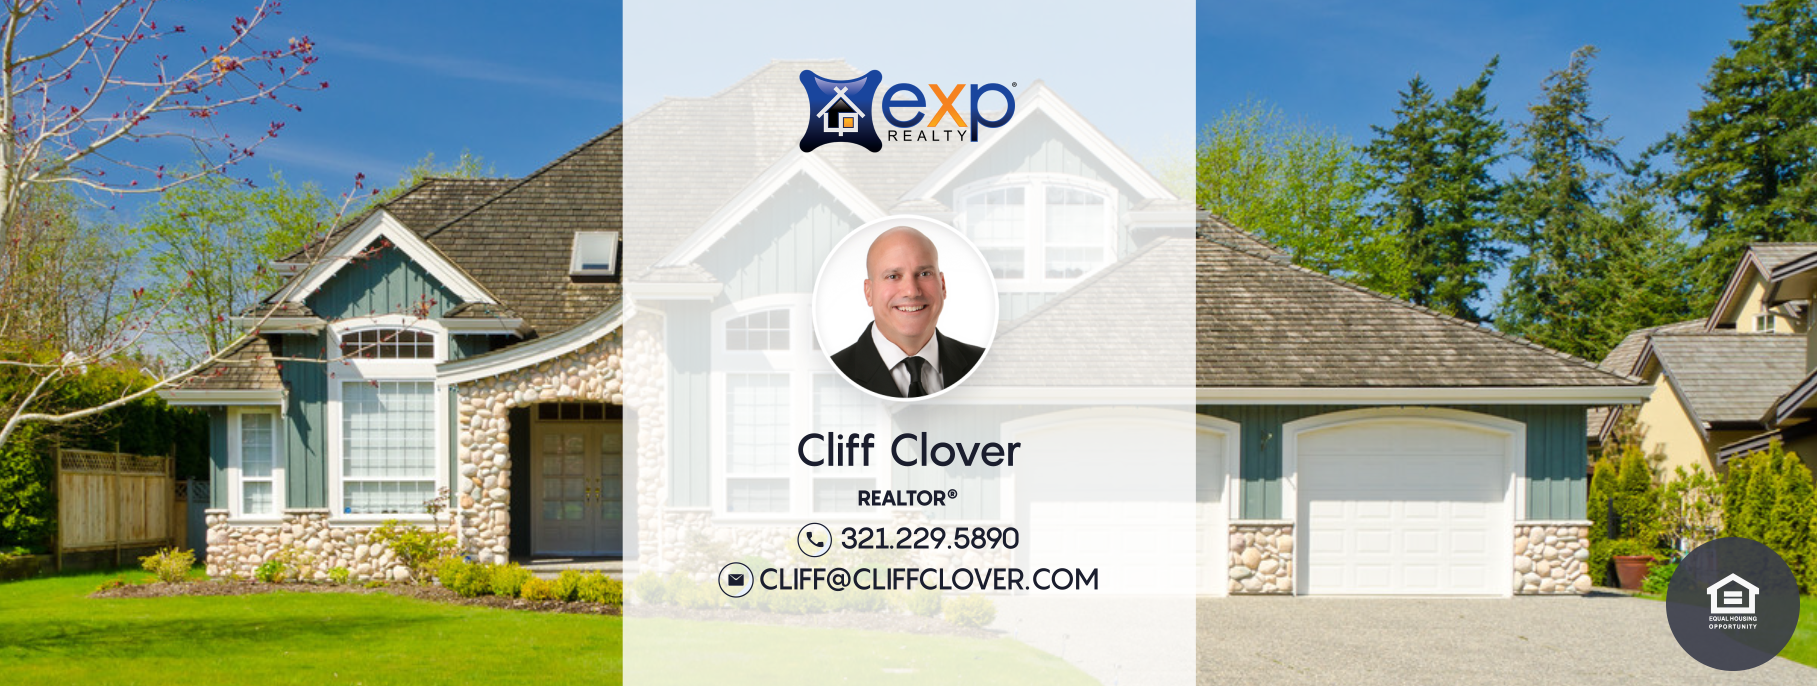 Cliff Clover - eXp Realty, LLC image 17